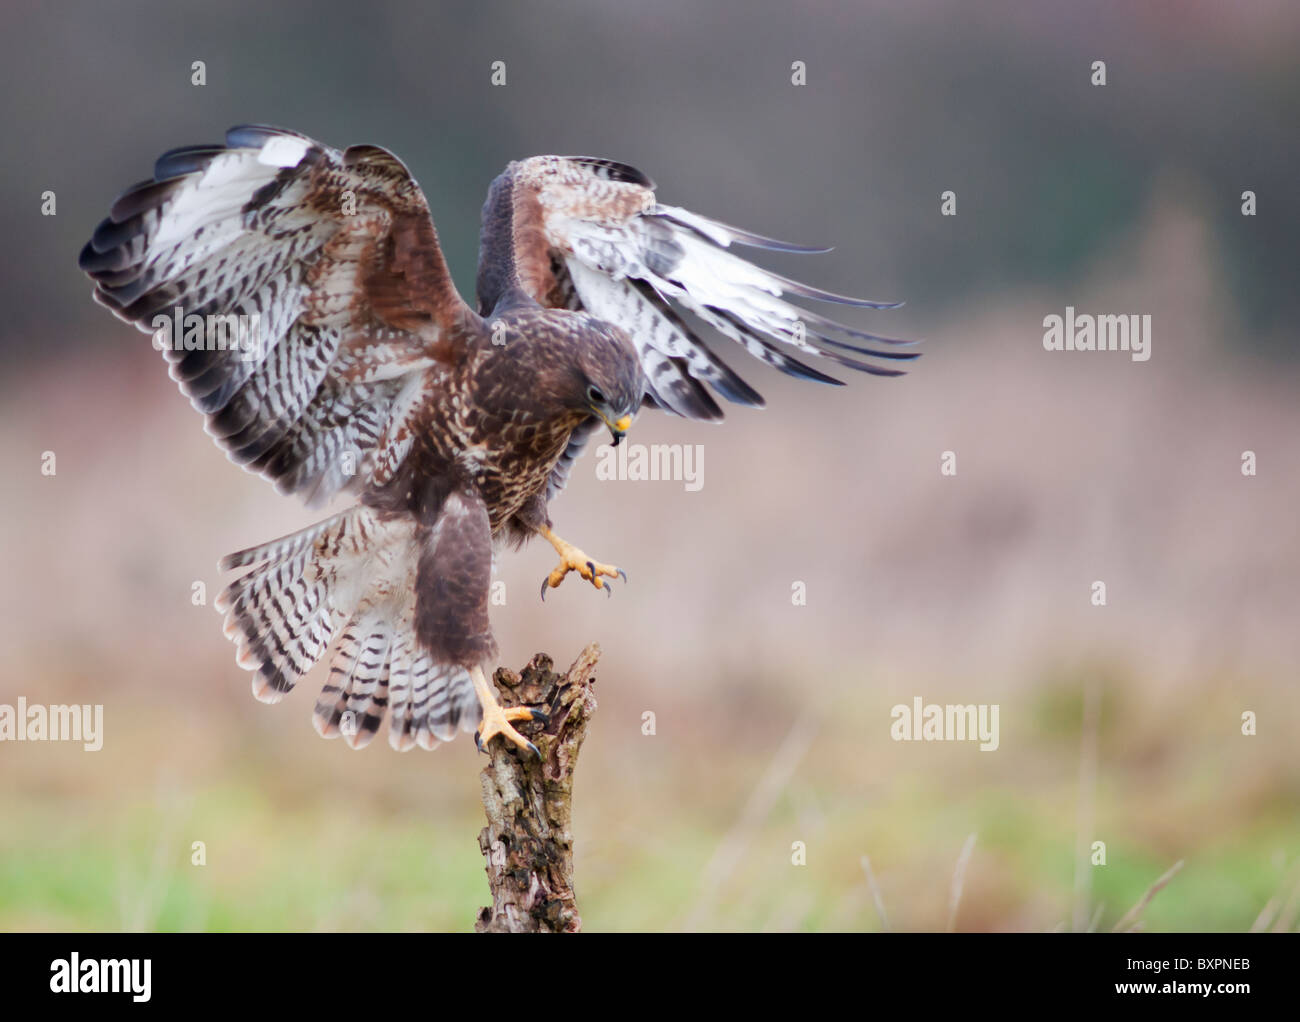 Common Buzzard, Buteo buteo landing on dead tree stump - Stock Image